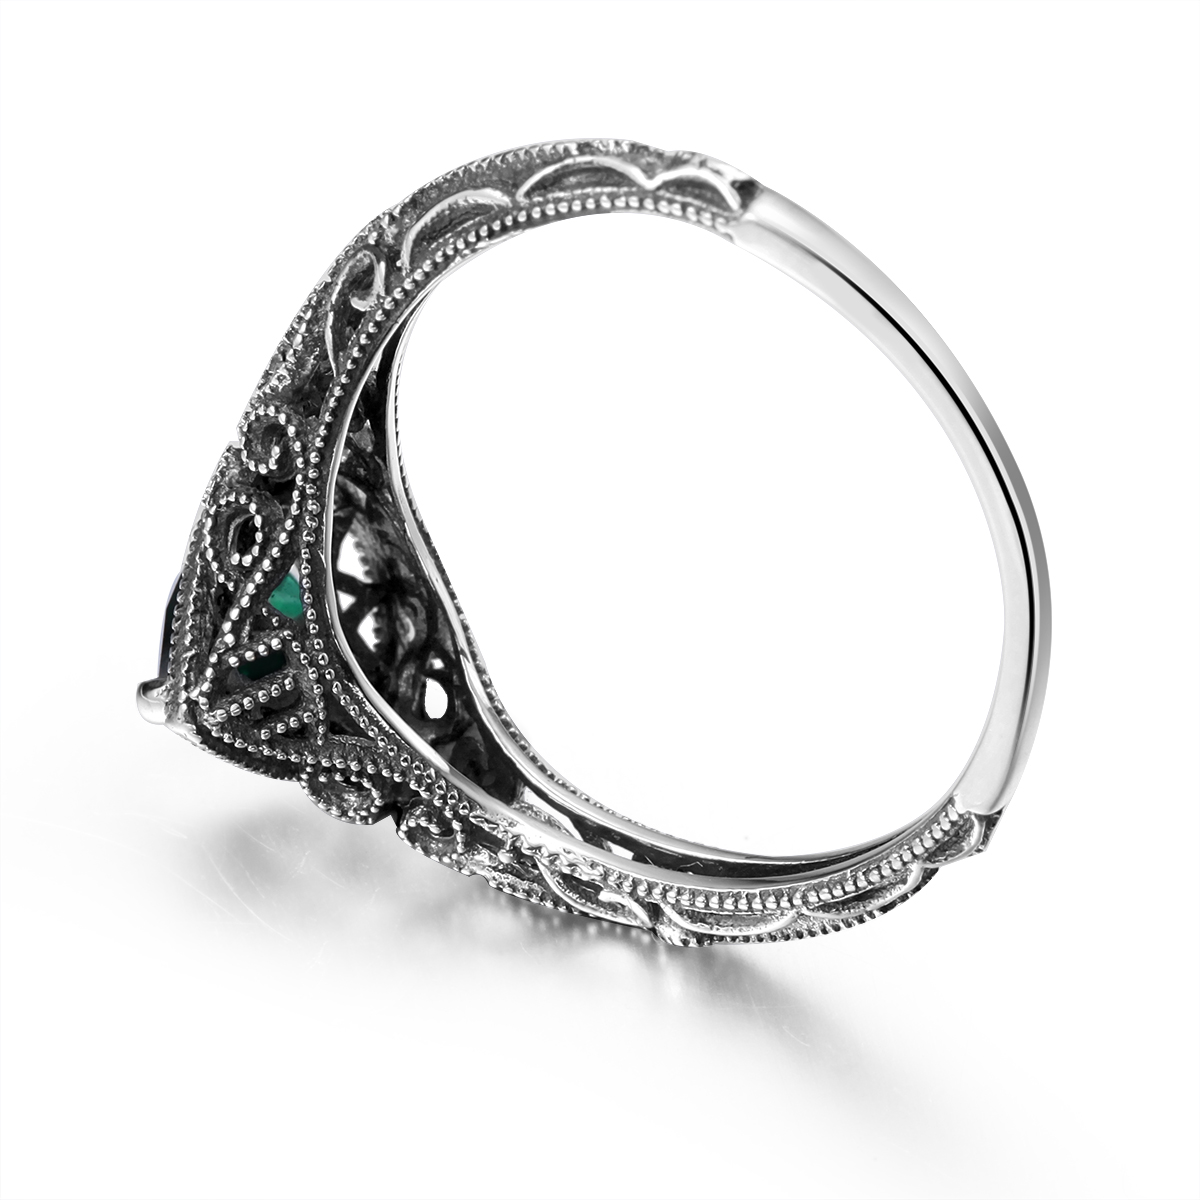 Ring Genuine 925 Silver Rings Stone Women Emerald Green Promise ...